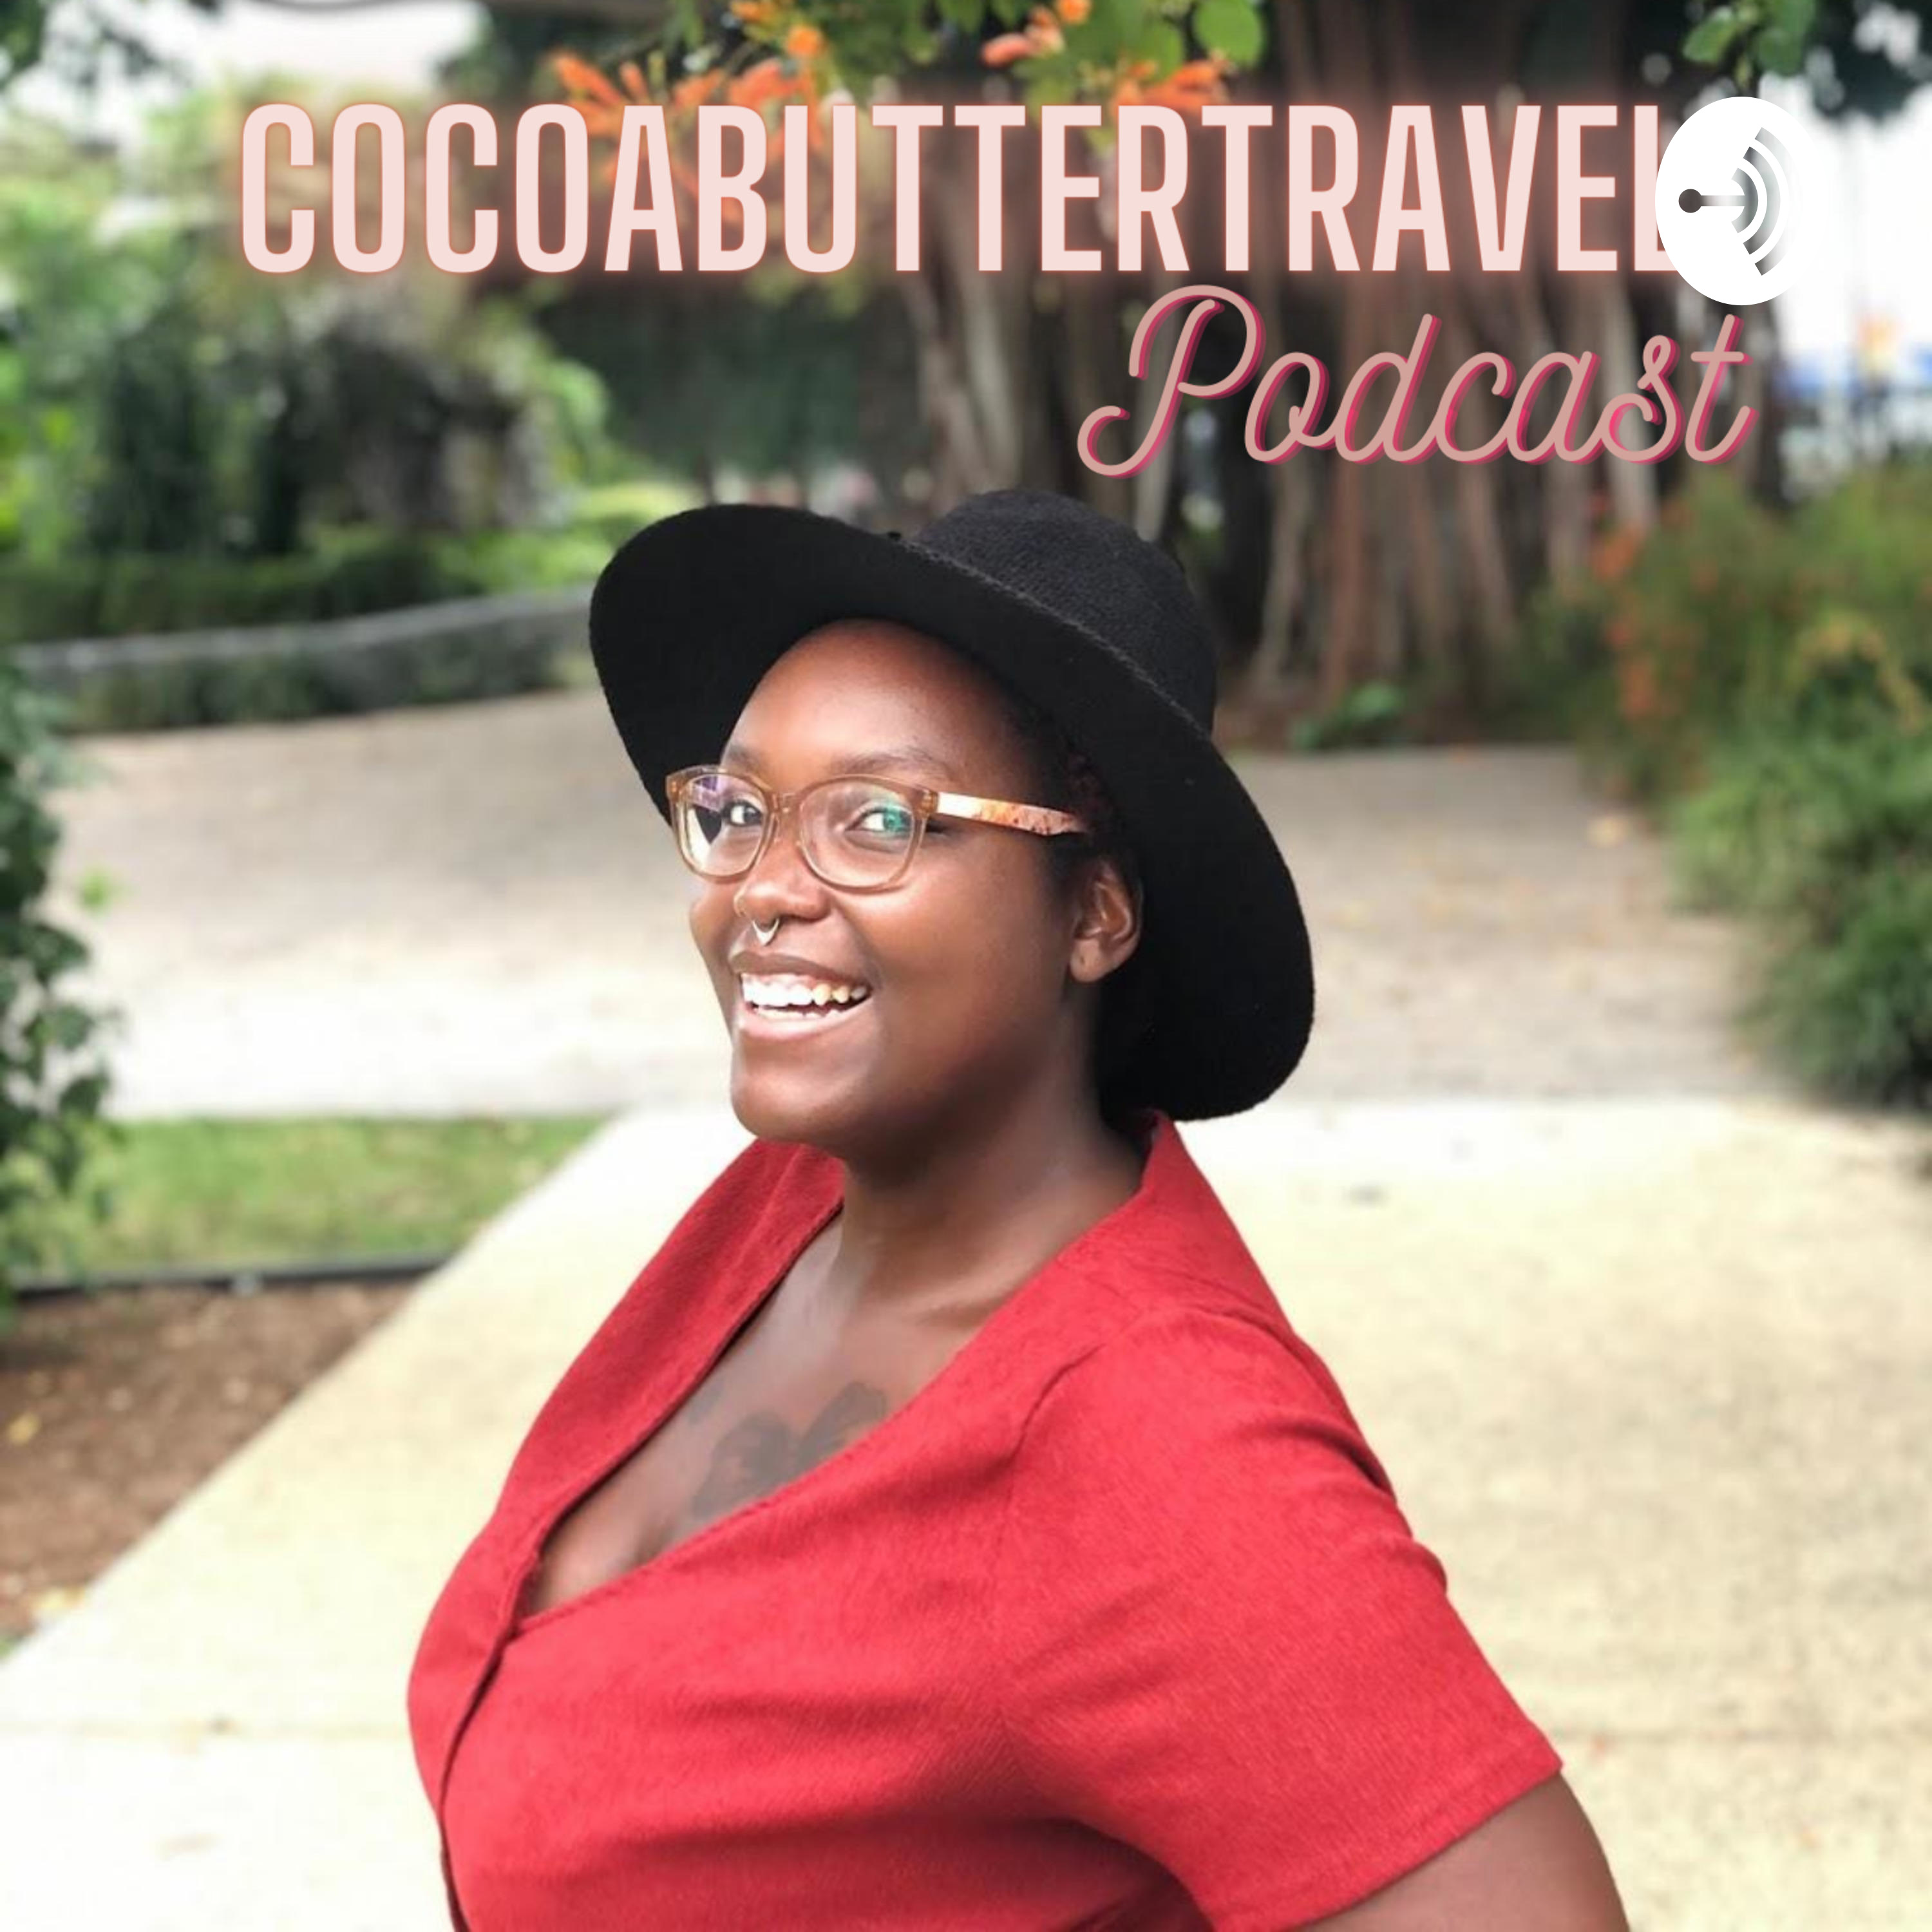 Cocoabuttertravel Podcast